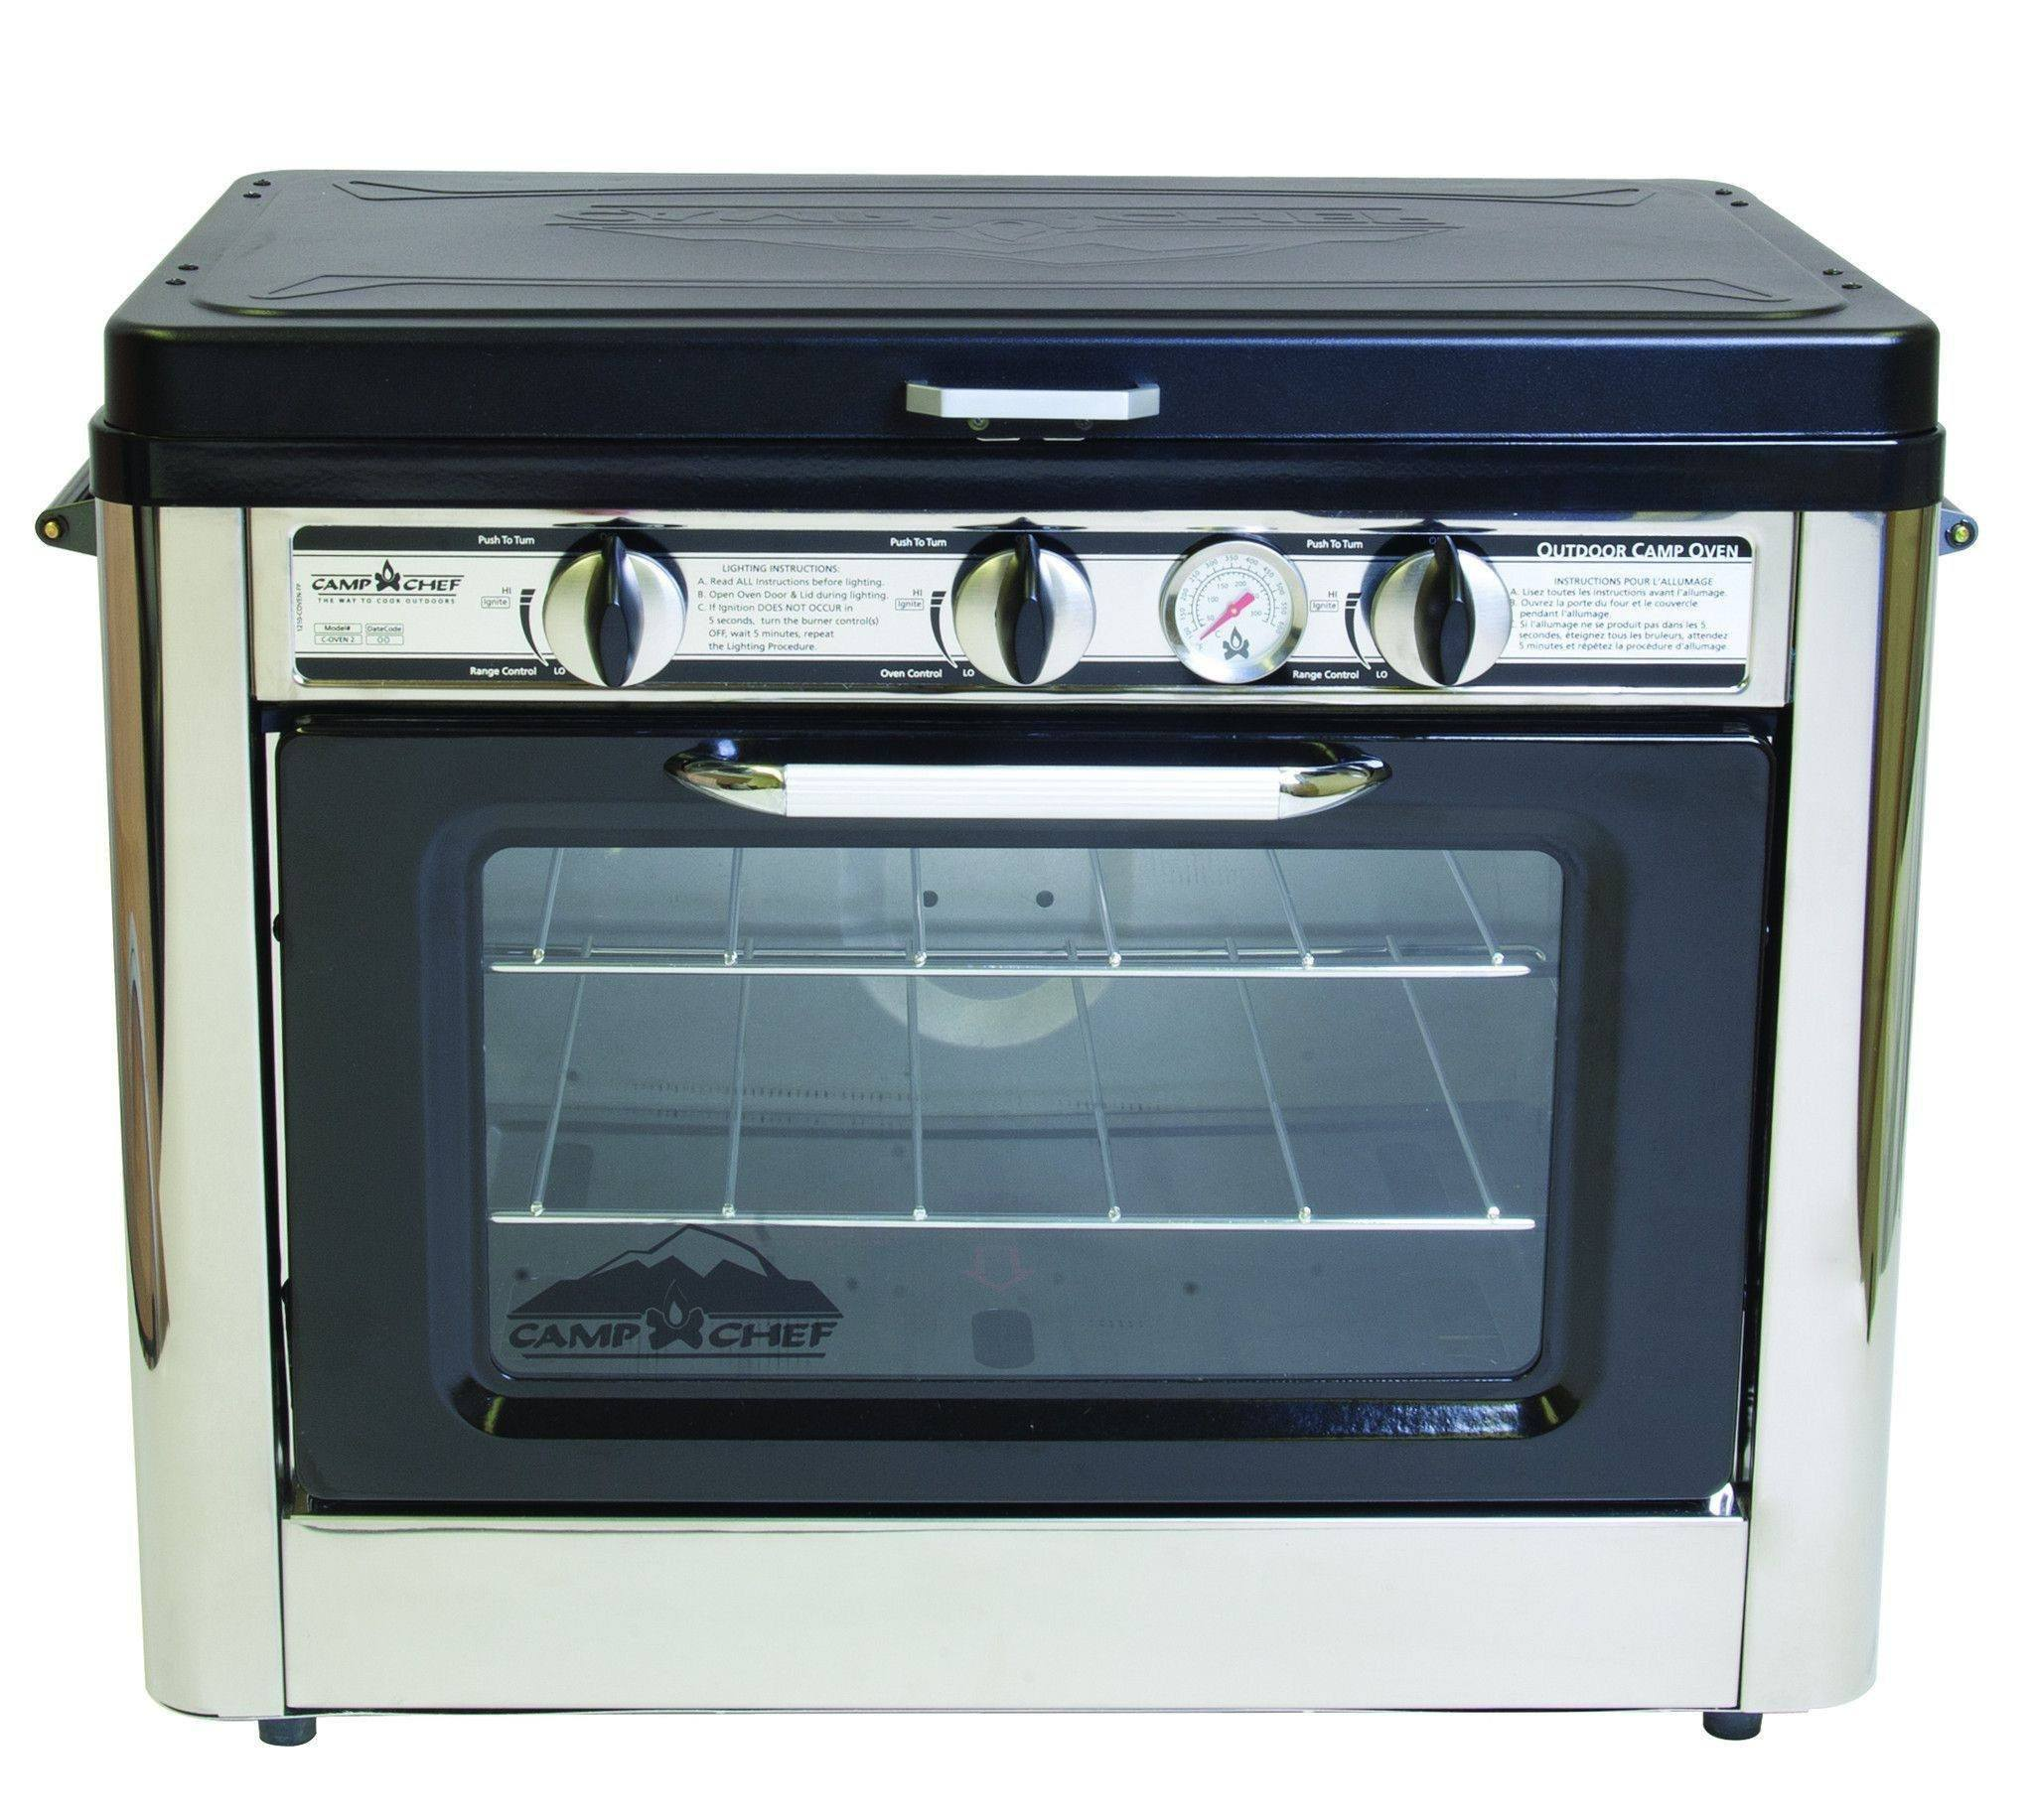 Deluxe Outdoor Oven With Built In 2 Burner Stove Camp Stoves Trail Kitchens